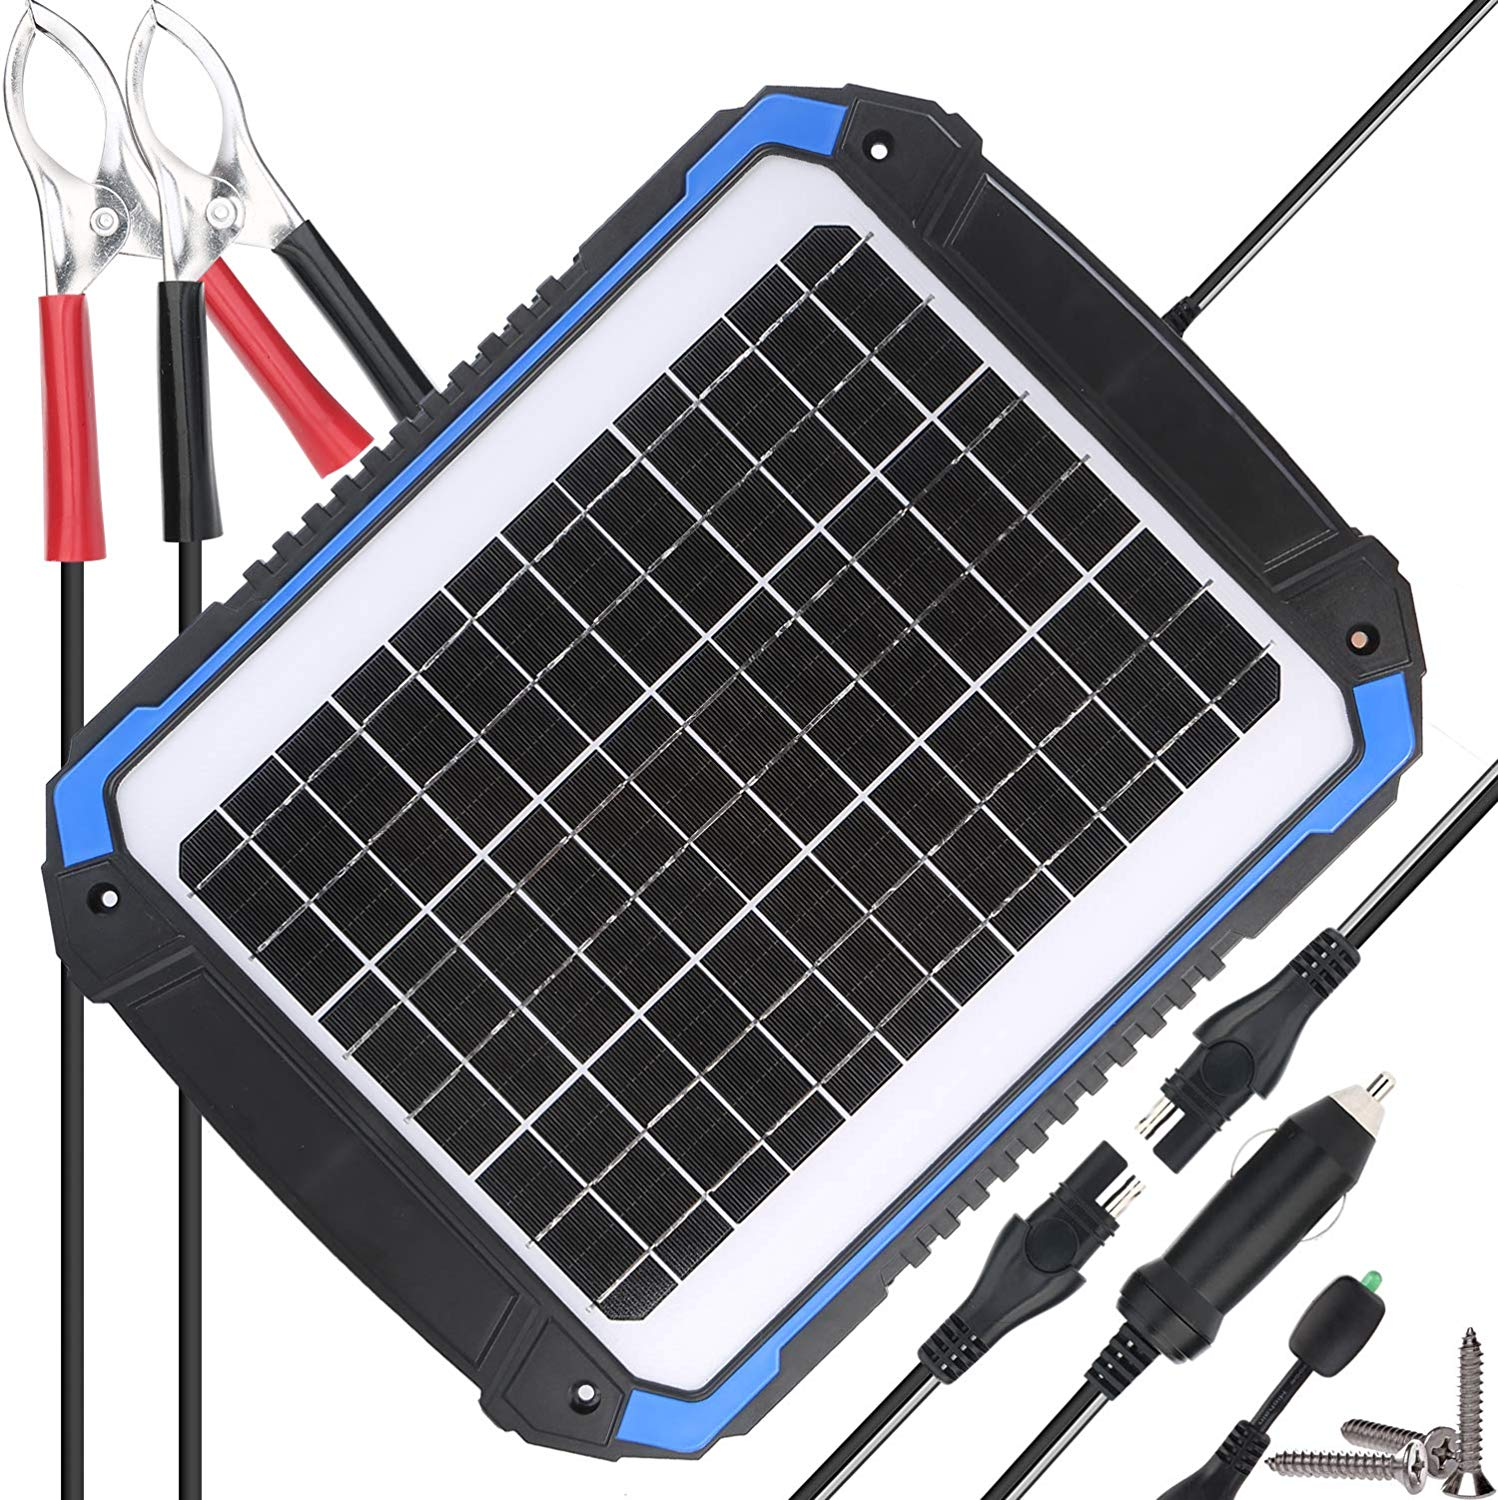 SUNER POWER 12V Solar Car Battery Charger & Maintainer - Portable 14W Solar Panel Trickle Charging Kit for Automotive, Motorcycle, Boat, Marine, RV, Trailer, Powersports, Snowmobile